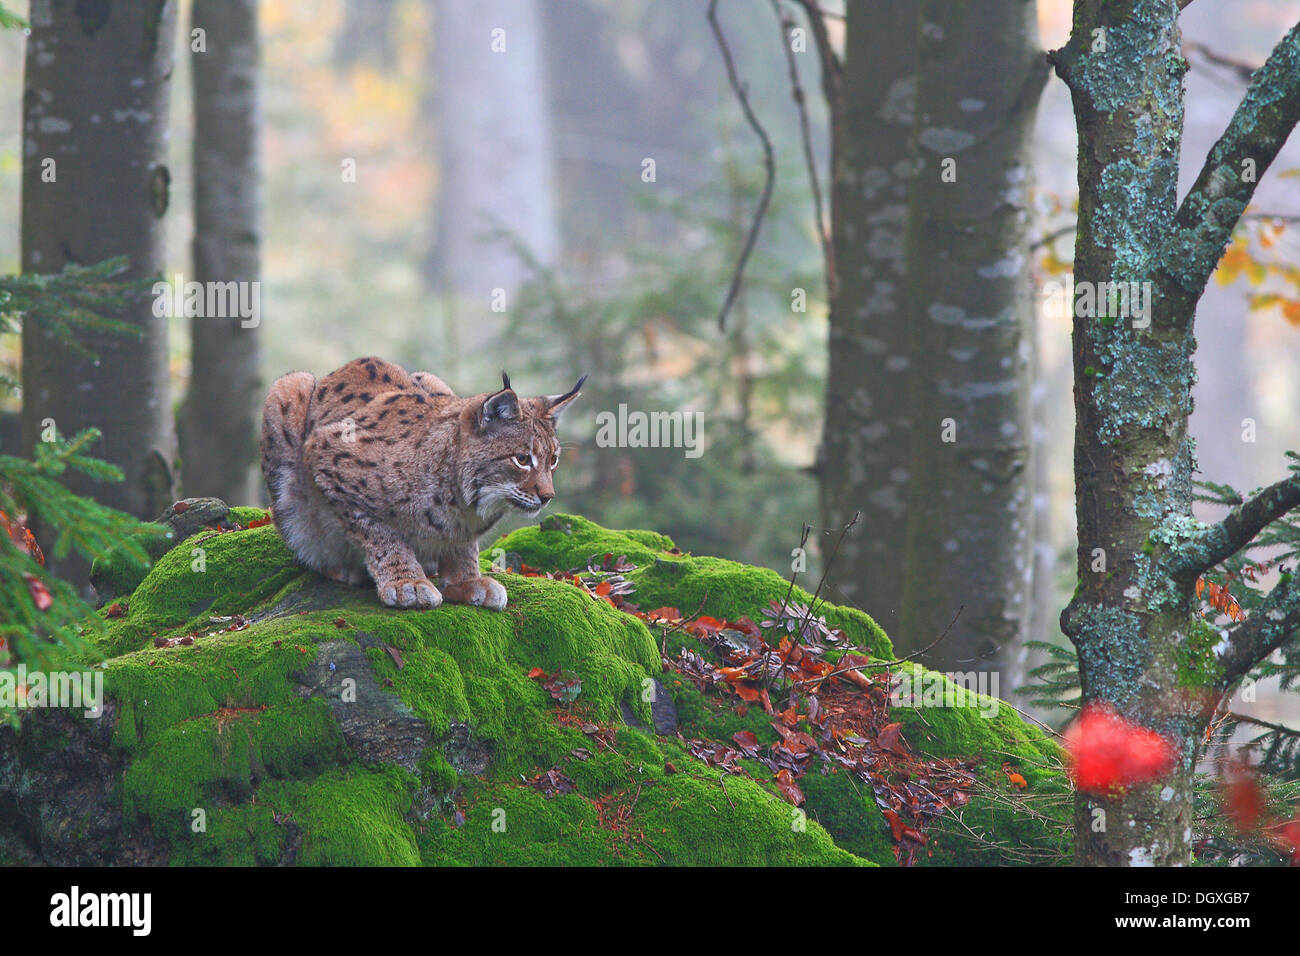 Eurasian Lynx or Northern Lynx (Lynx lynx) crouched on a rock, enclosure area, Bavarian Forest National Park, Bavaria - Stock Image